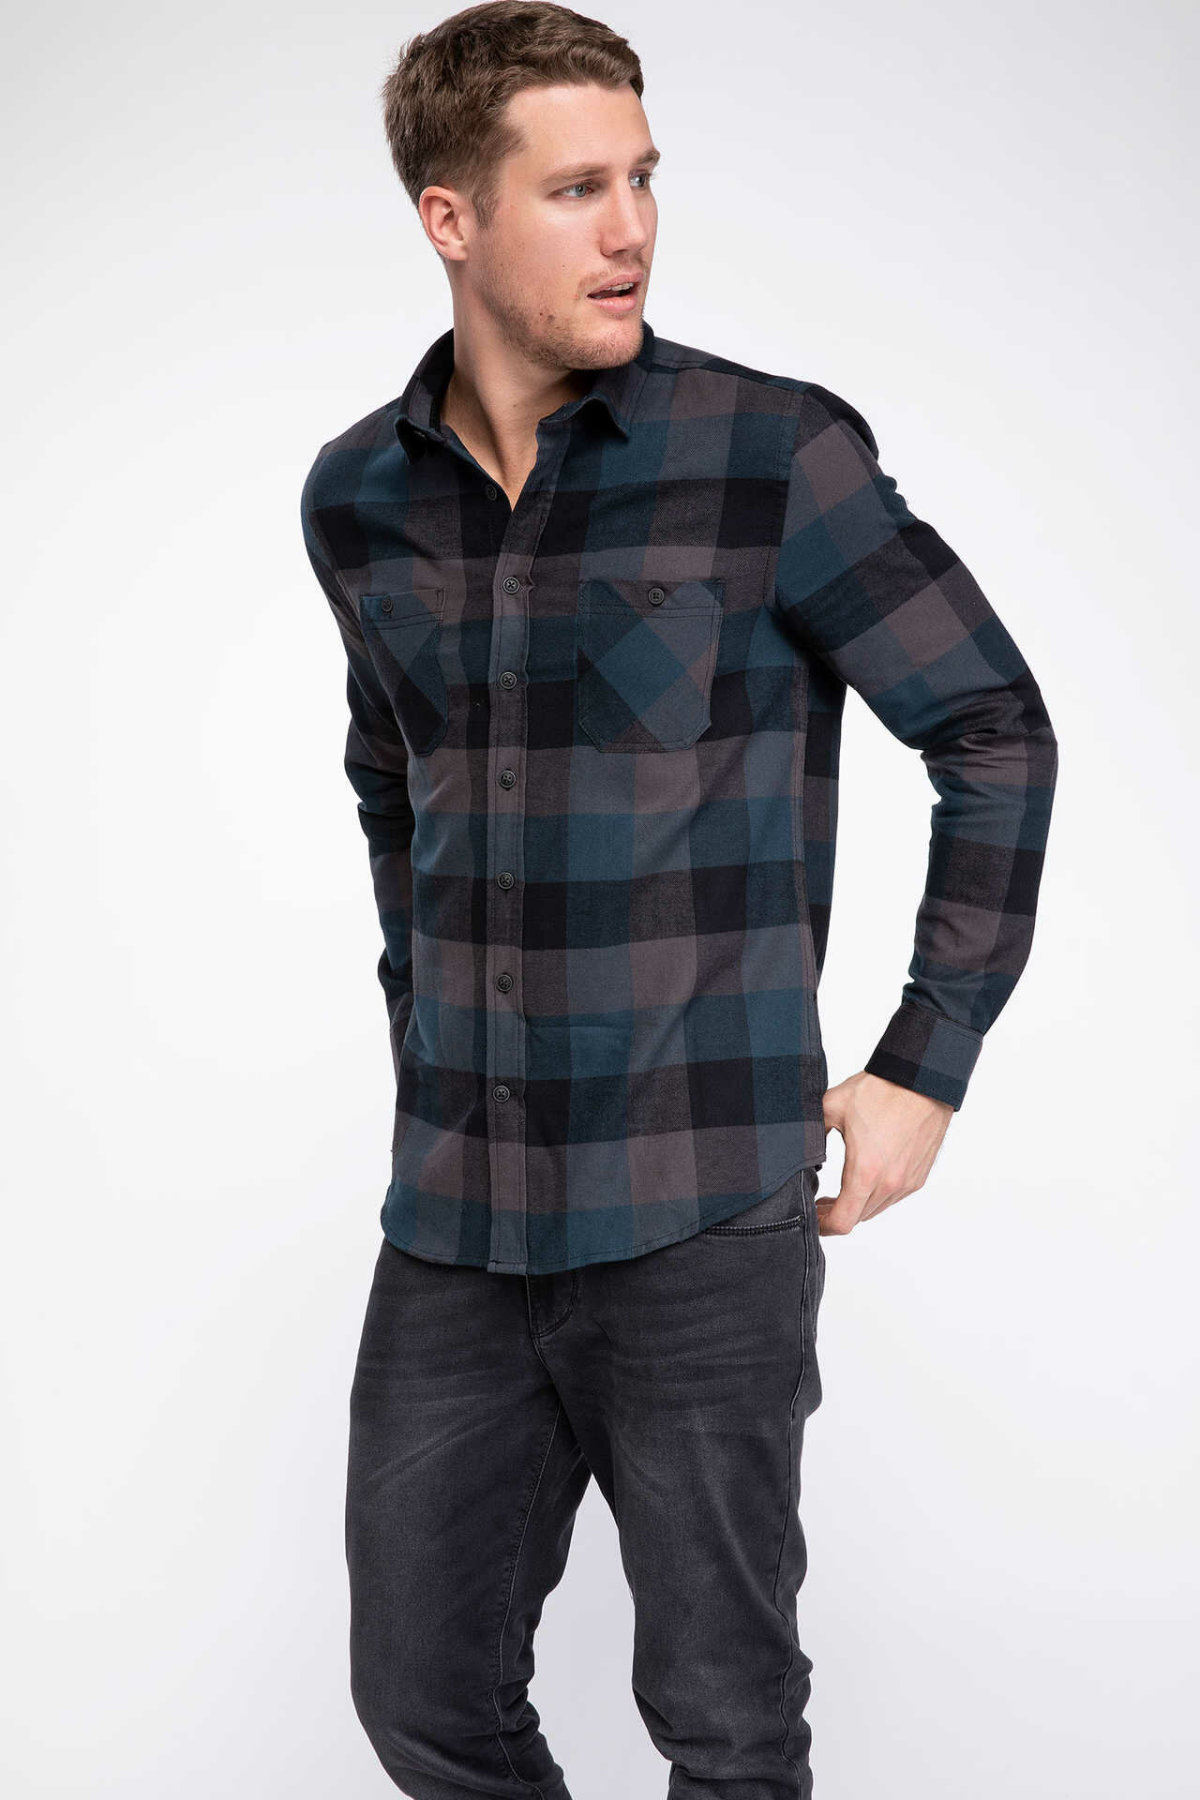 DeFacto Man Classic Red Black Plaid Long Sleeve Shirt Men's Grid Cotton Shirts Mixed Color Top Shirts Male Top Cloth-J0599AZ18WN